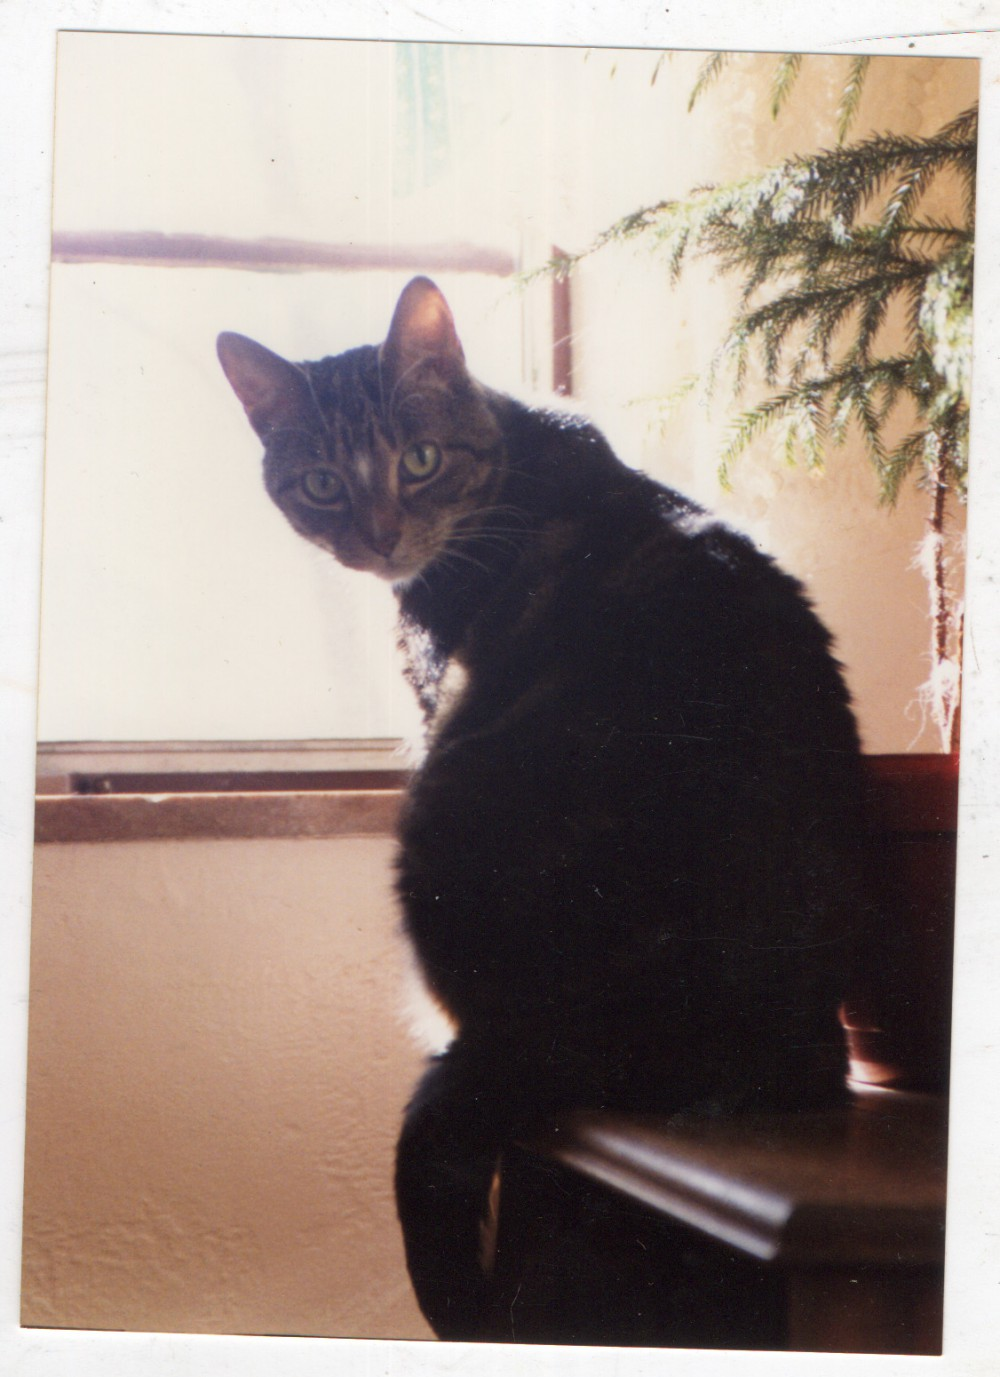 Tabby cat on table by window